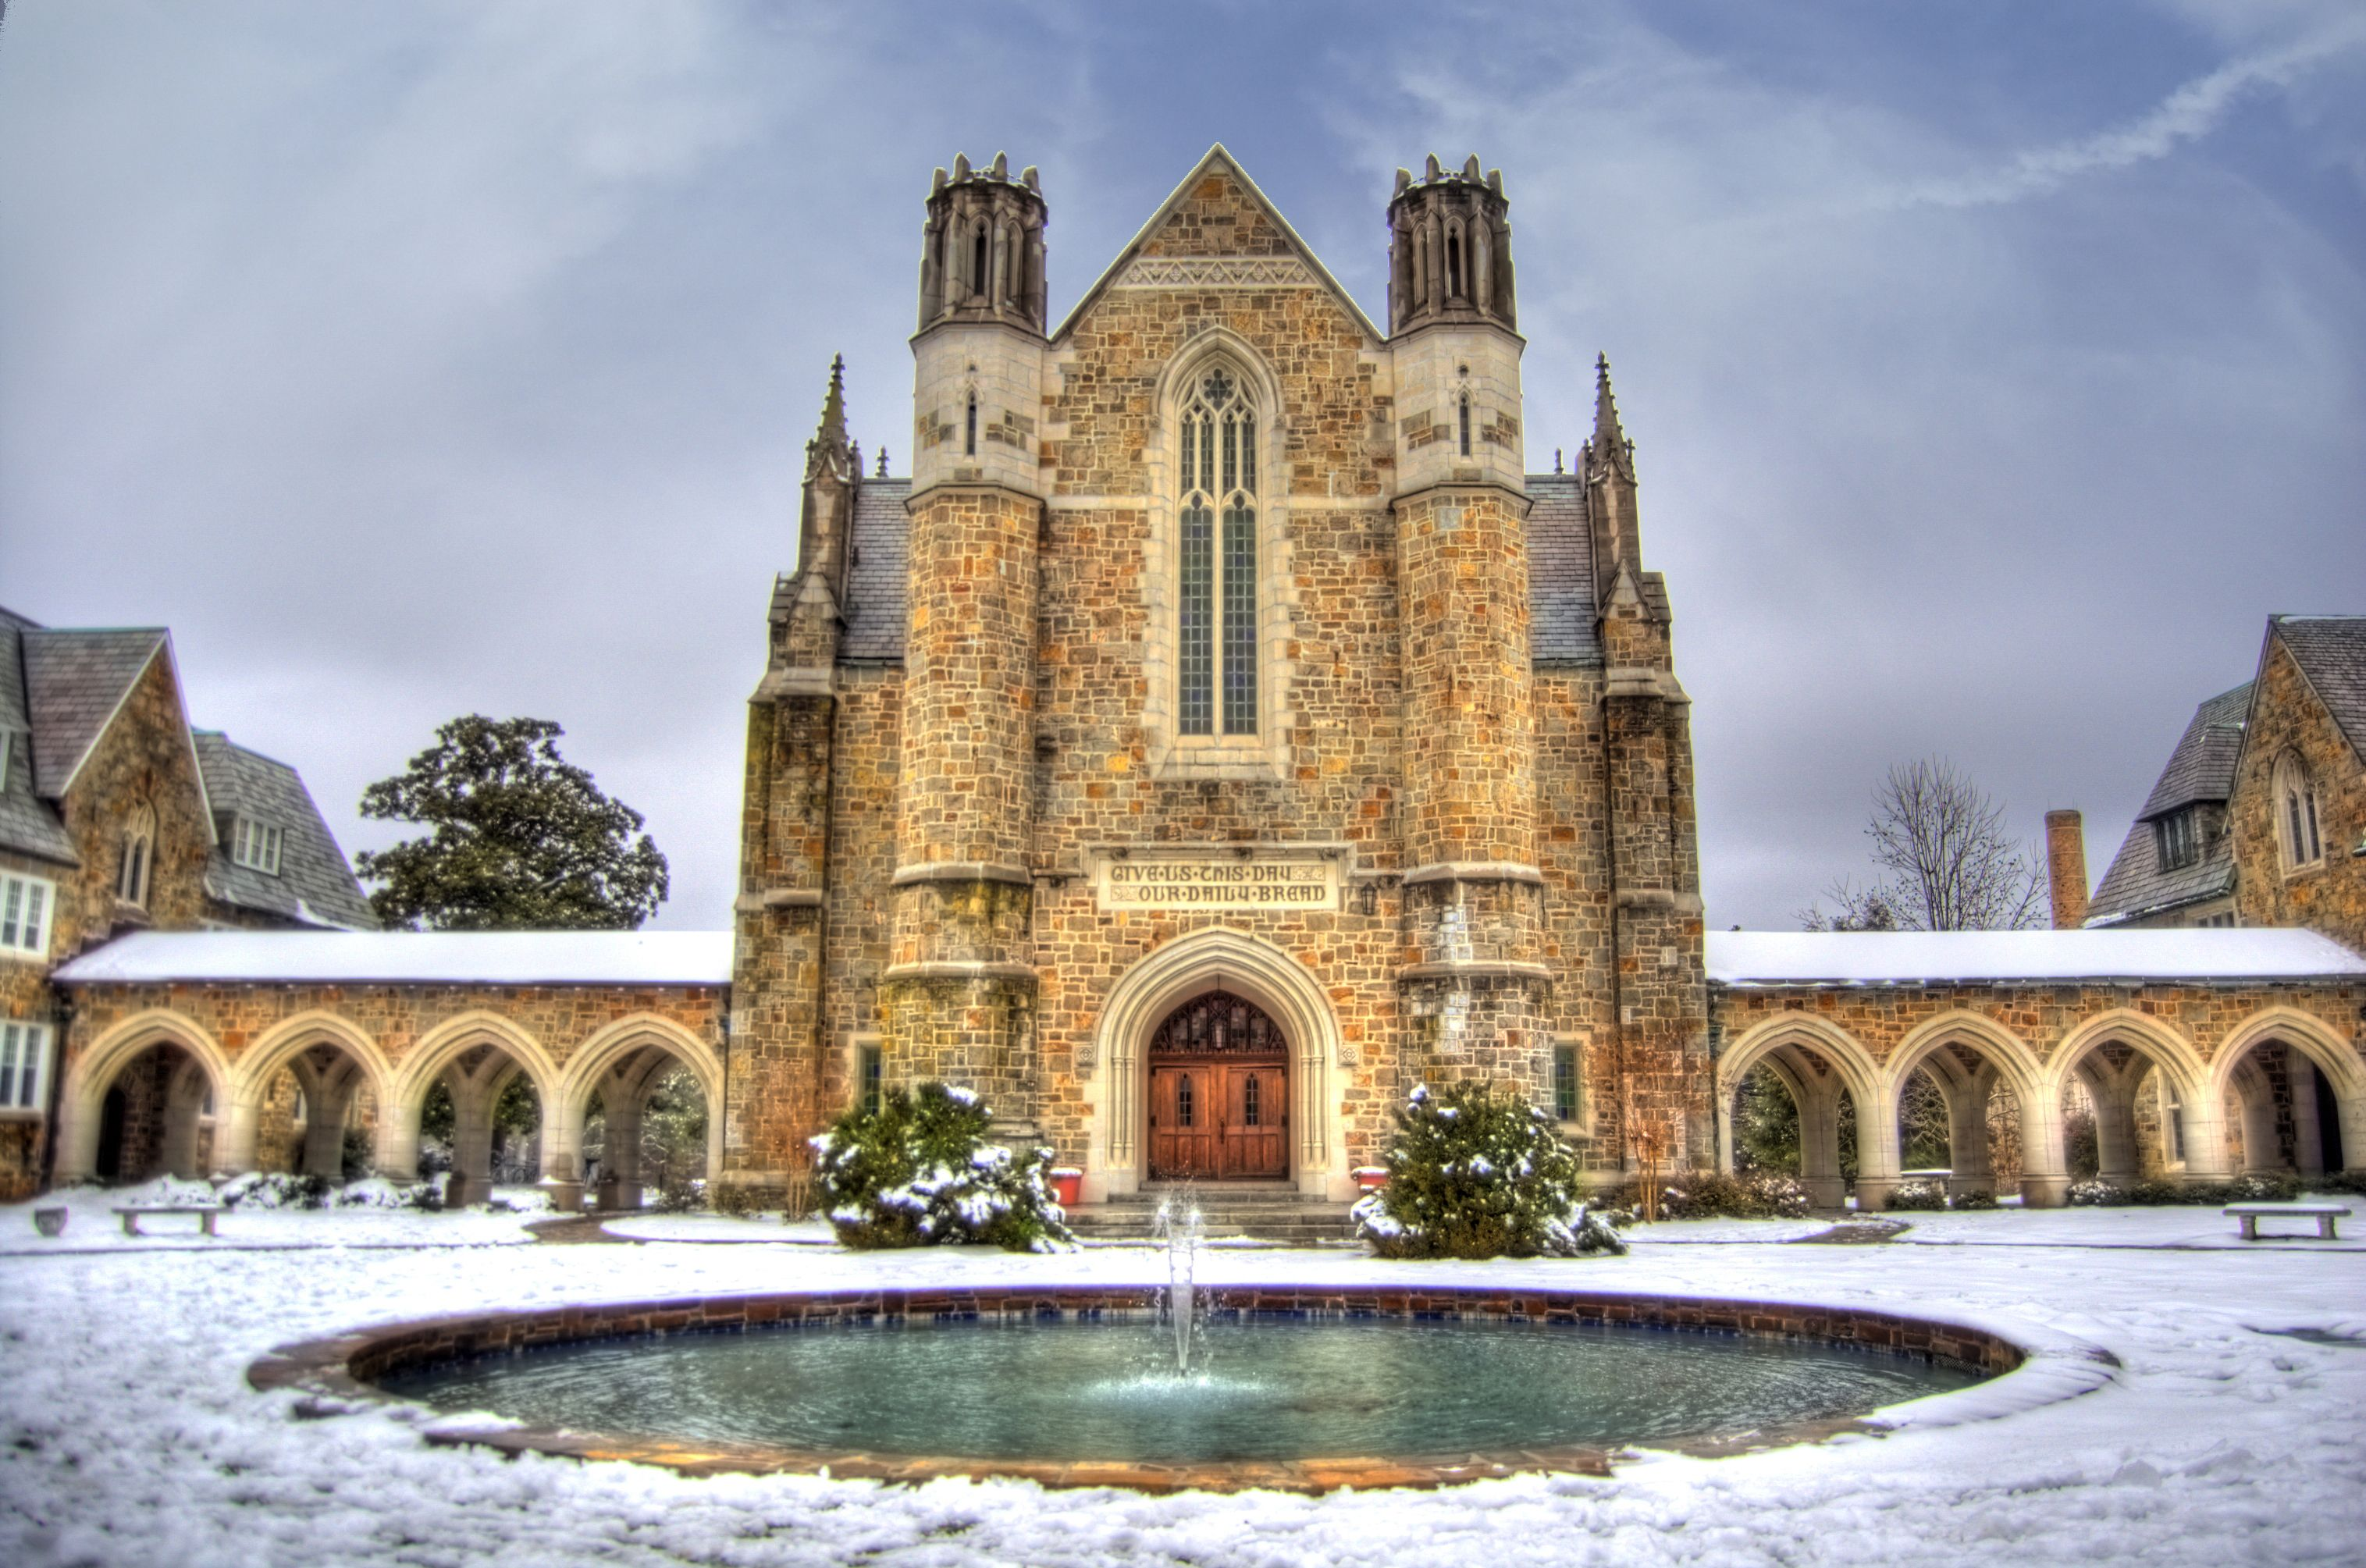 Berry college ford dining hall photo by zane cochran